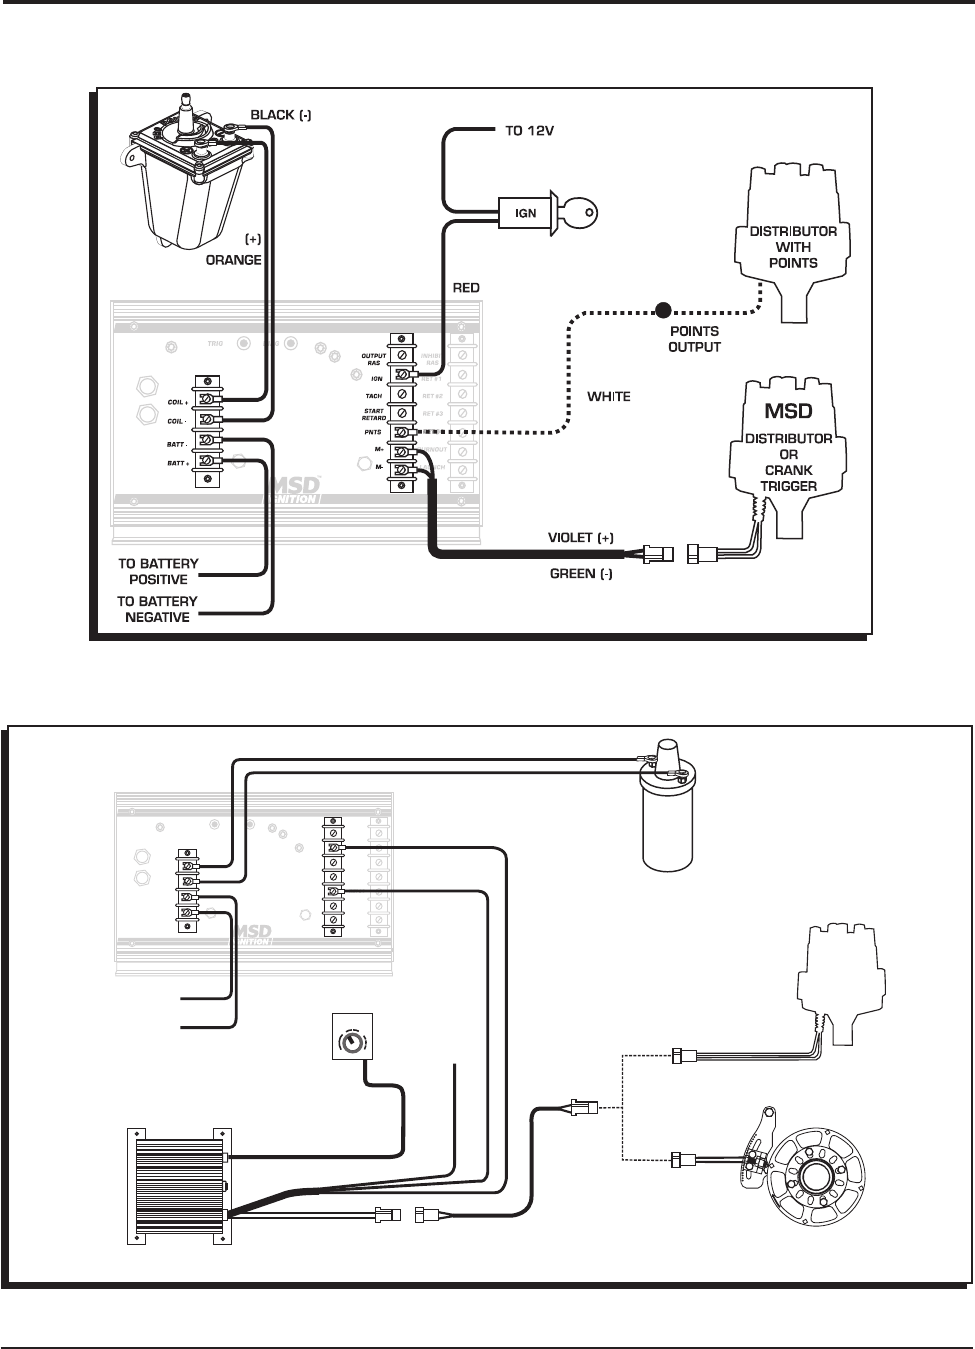 Msd 7230 Ignition Kit Installation Instructions 121 Wiring Diagrams For Msd6 Offroad With 8920 Tach Adapter I Nstallation 3